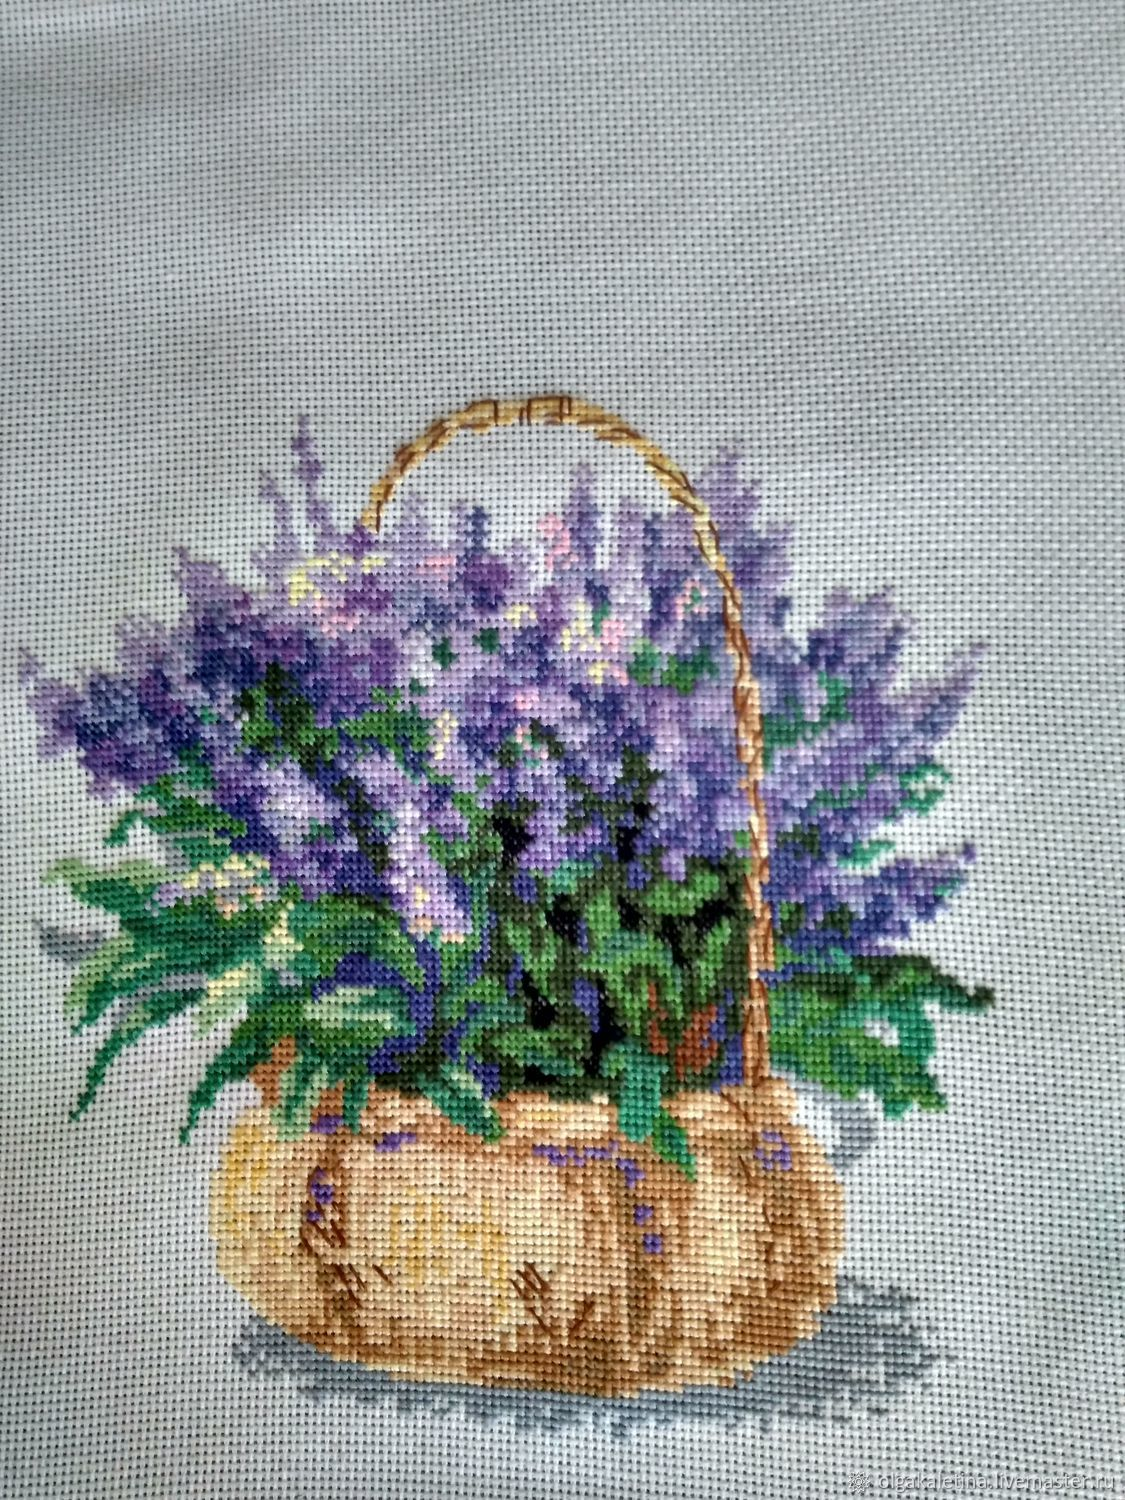 Embroidery'French lavender', Pictures, Kurgan,  Фото №1